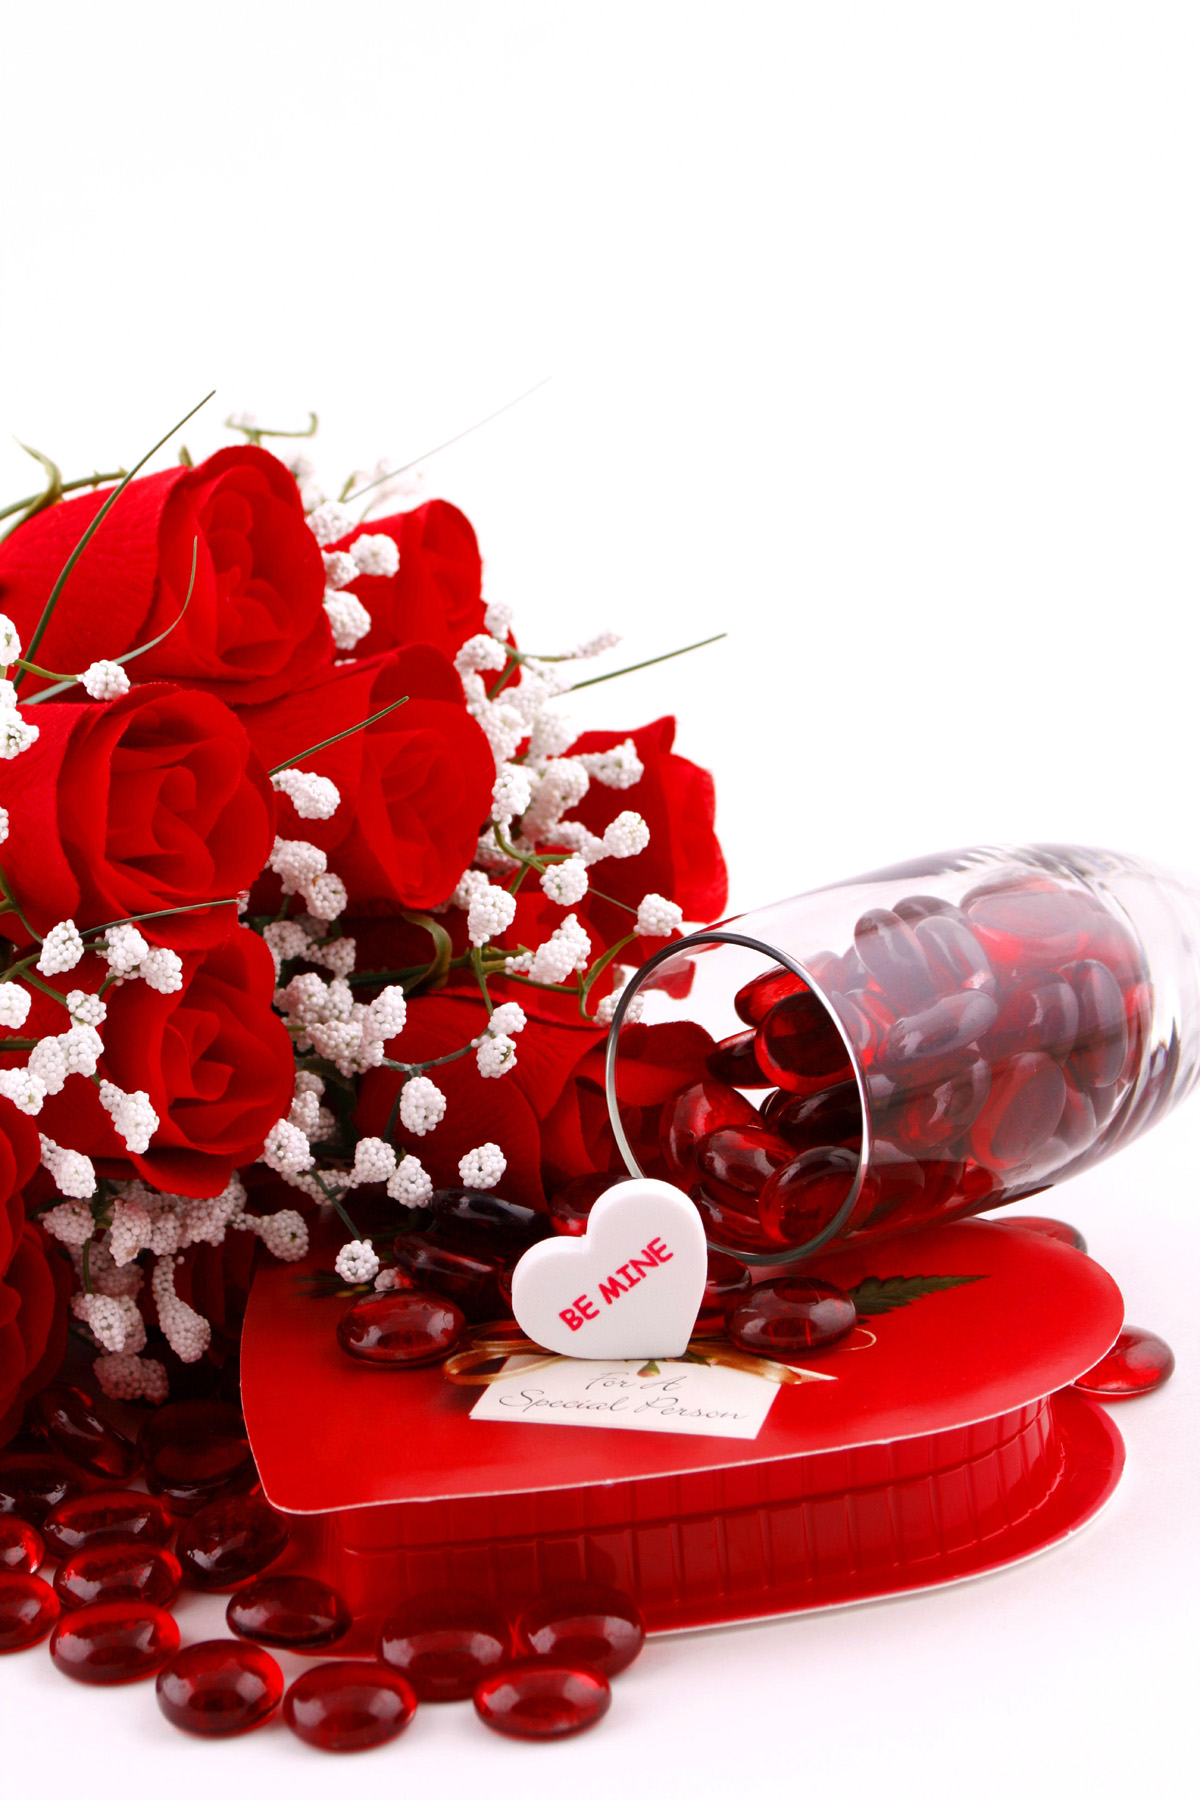 Flowers and Gifts 20907